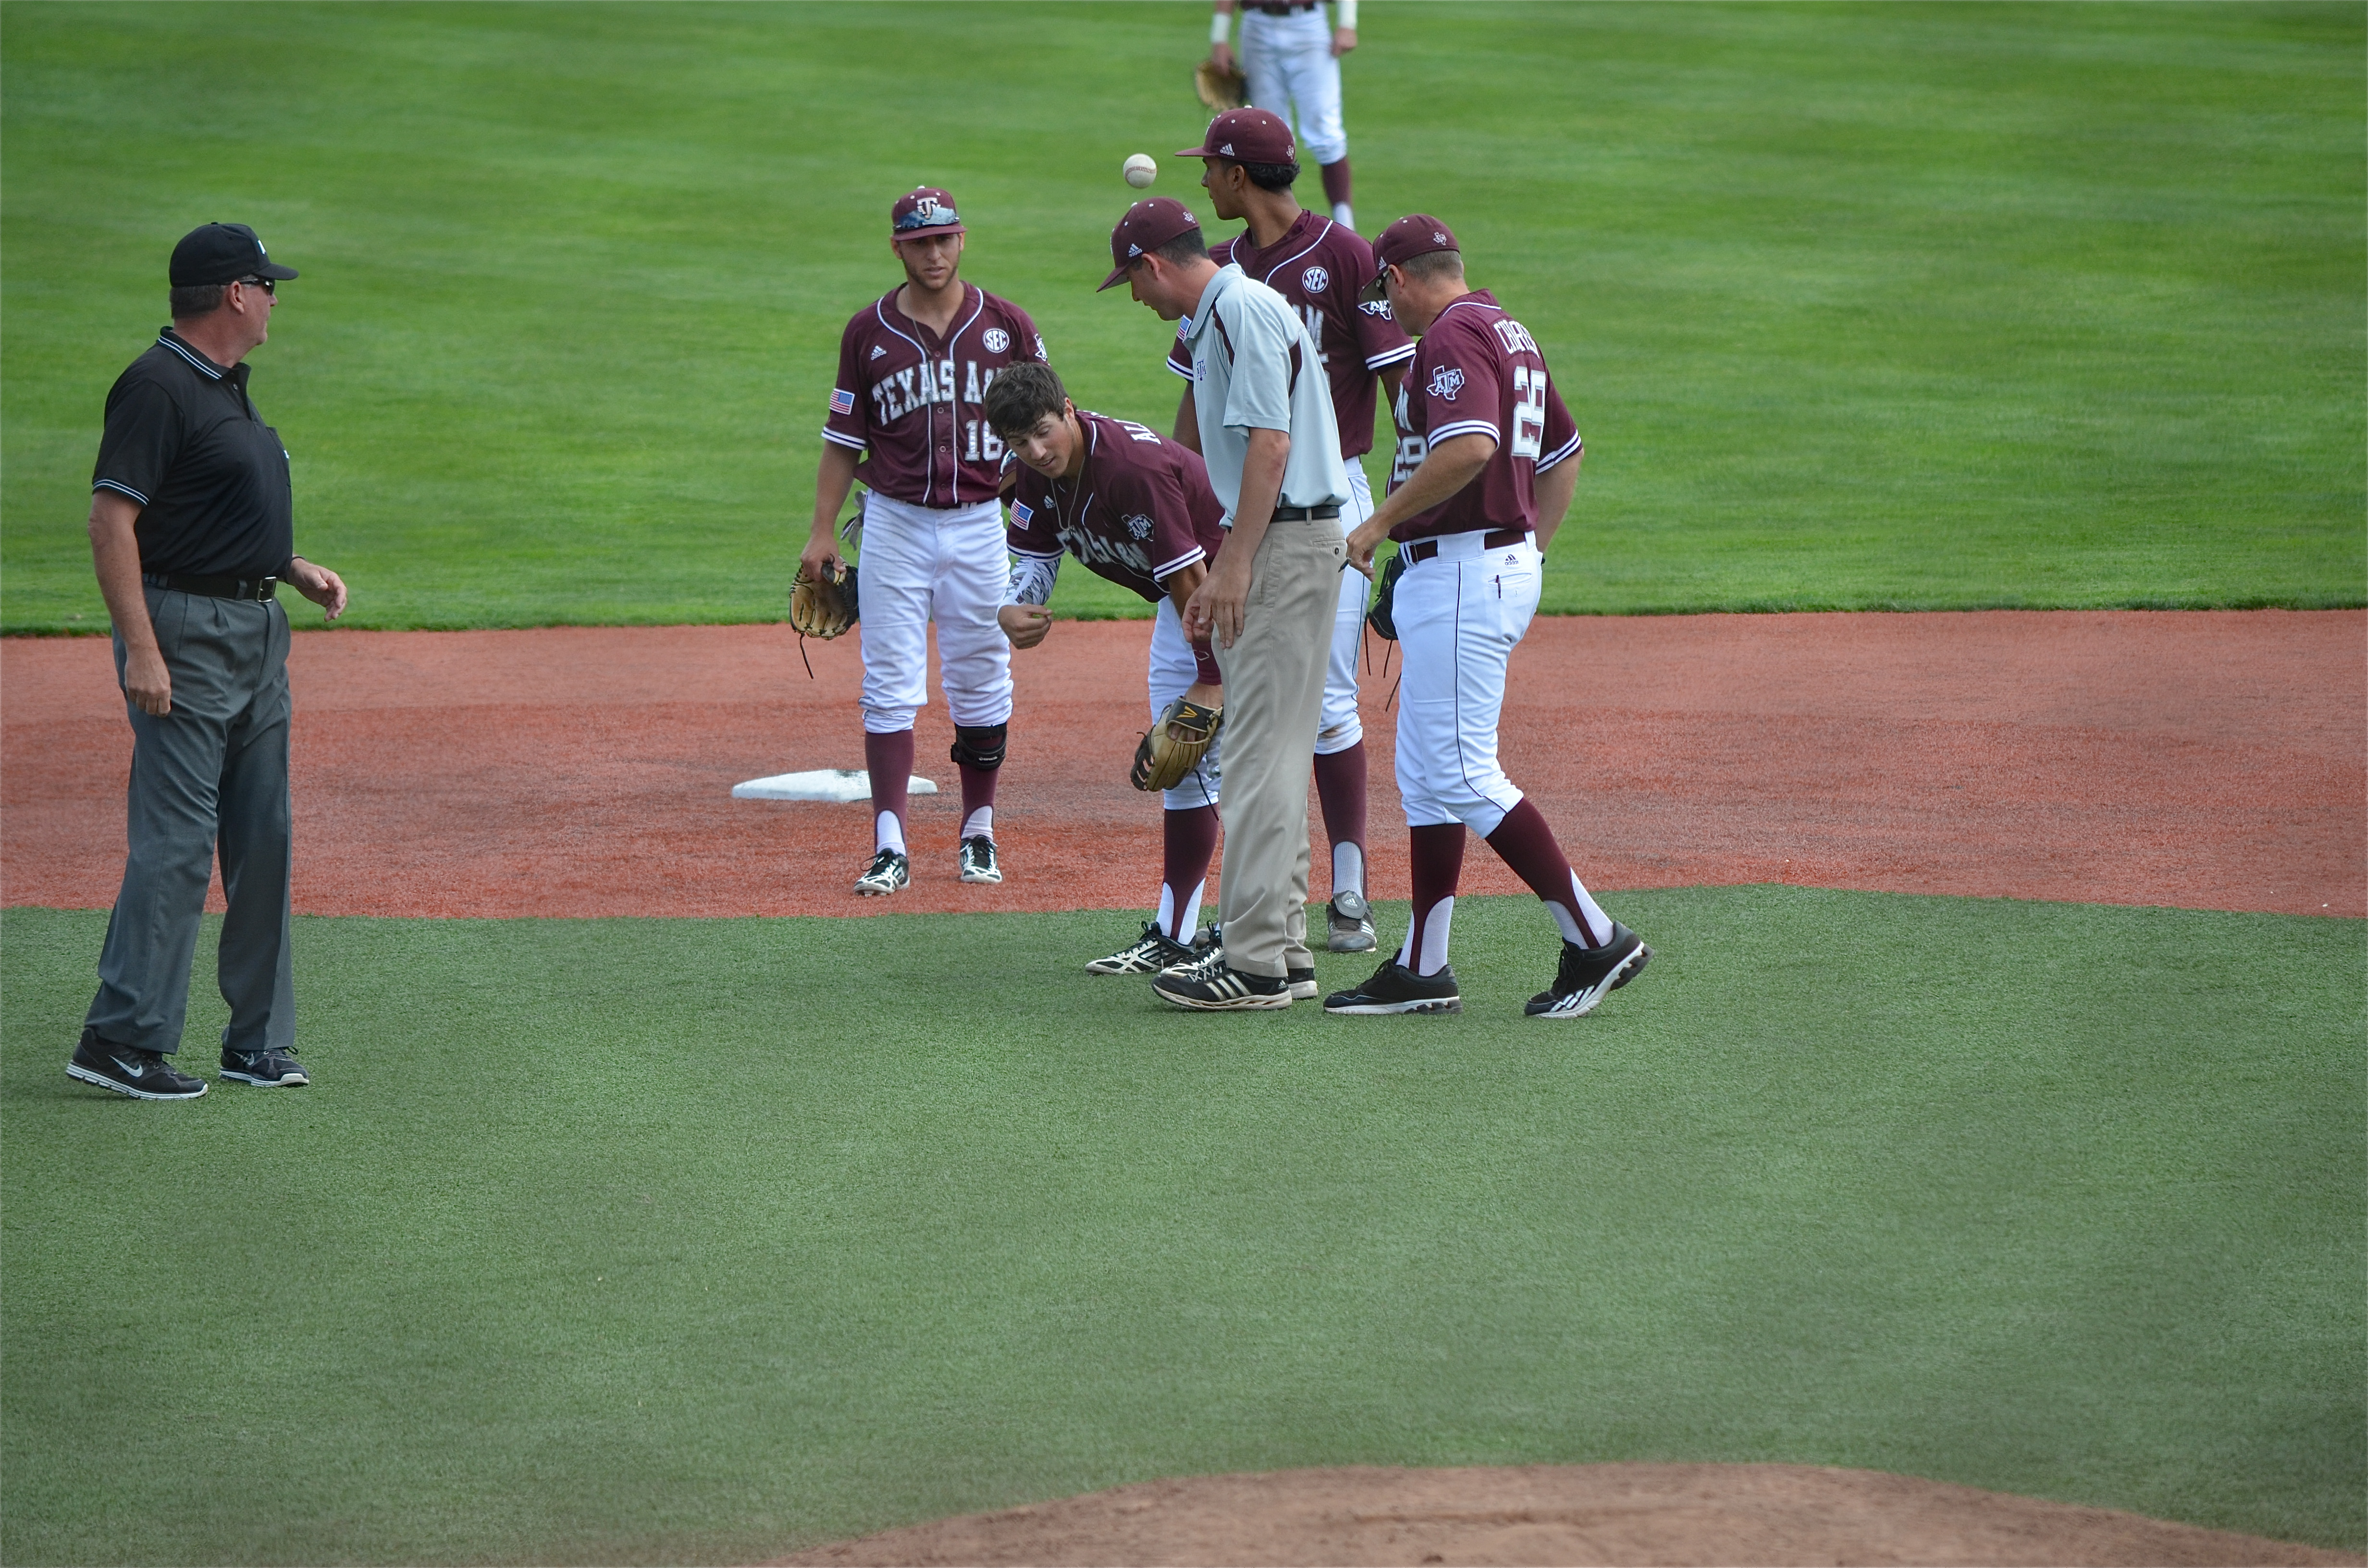 A Texas A&M trainer and coach Rob Childress check on second baseman Blake Allemand. (photo by Aaron Yost)